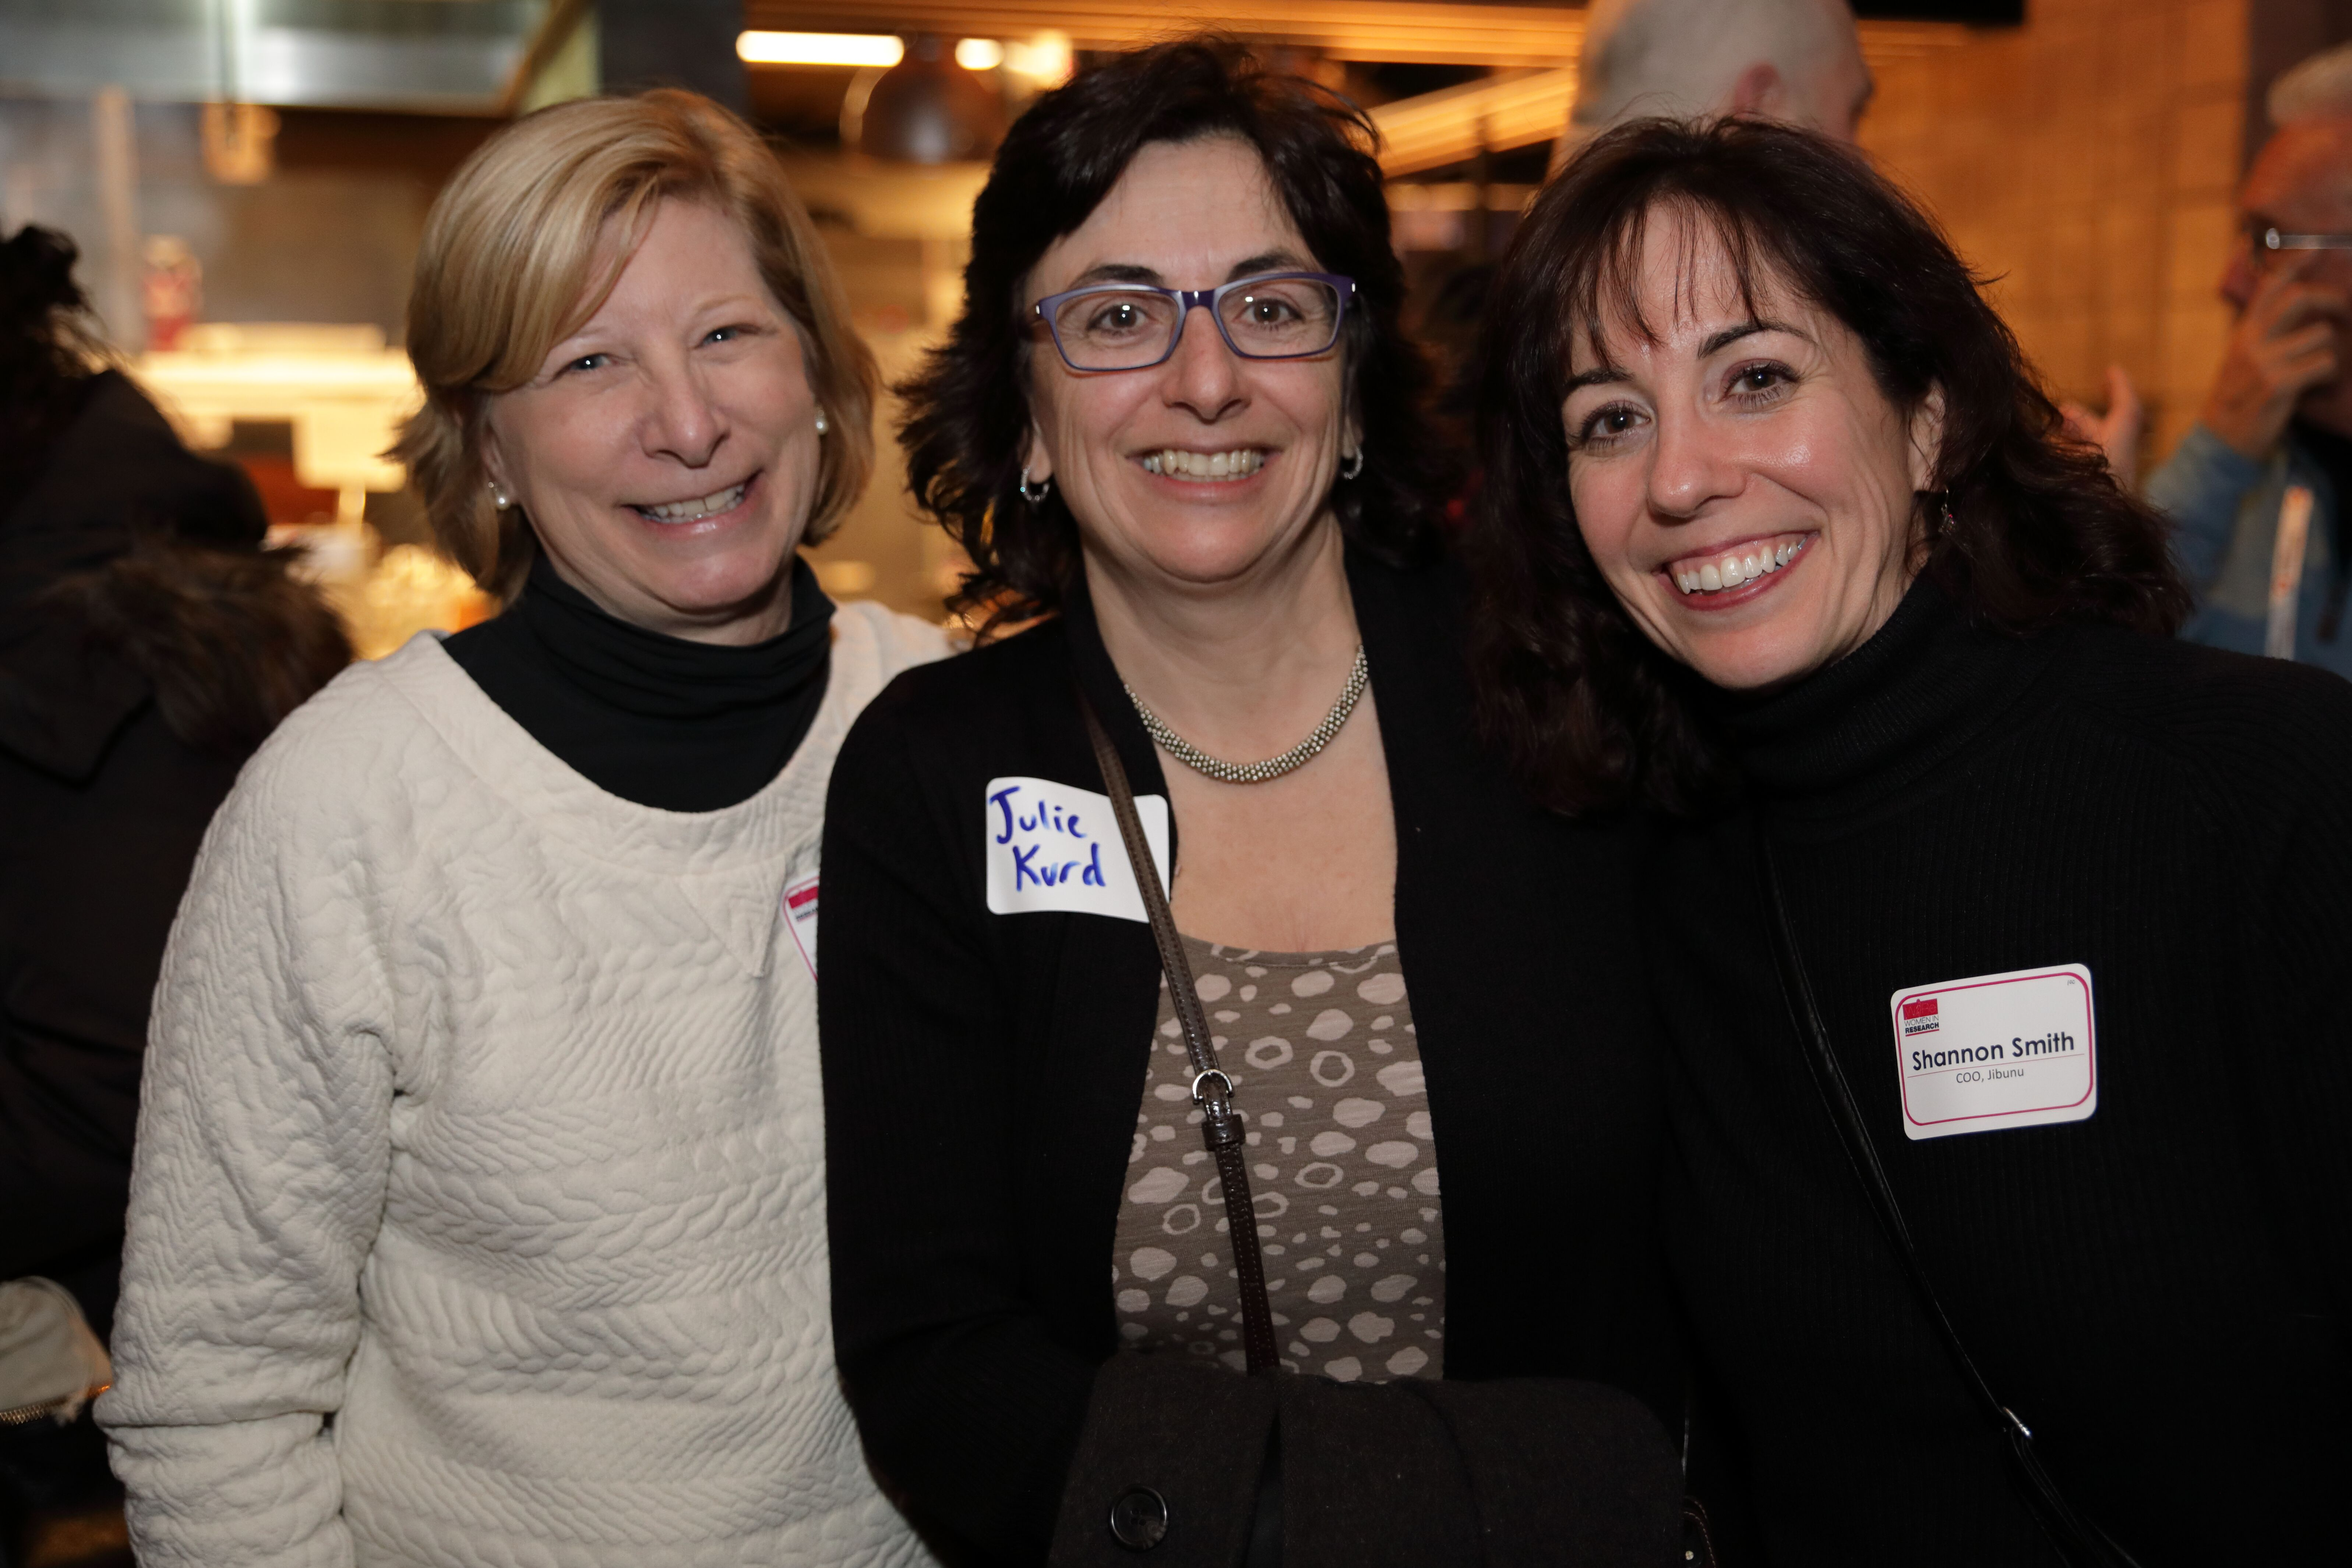 Three women smiling at a Women in Research event